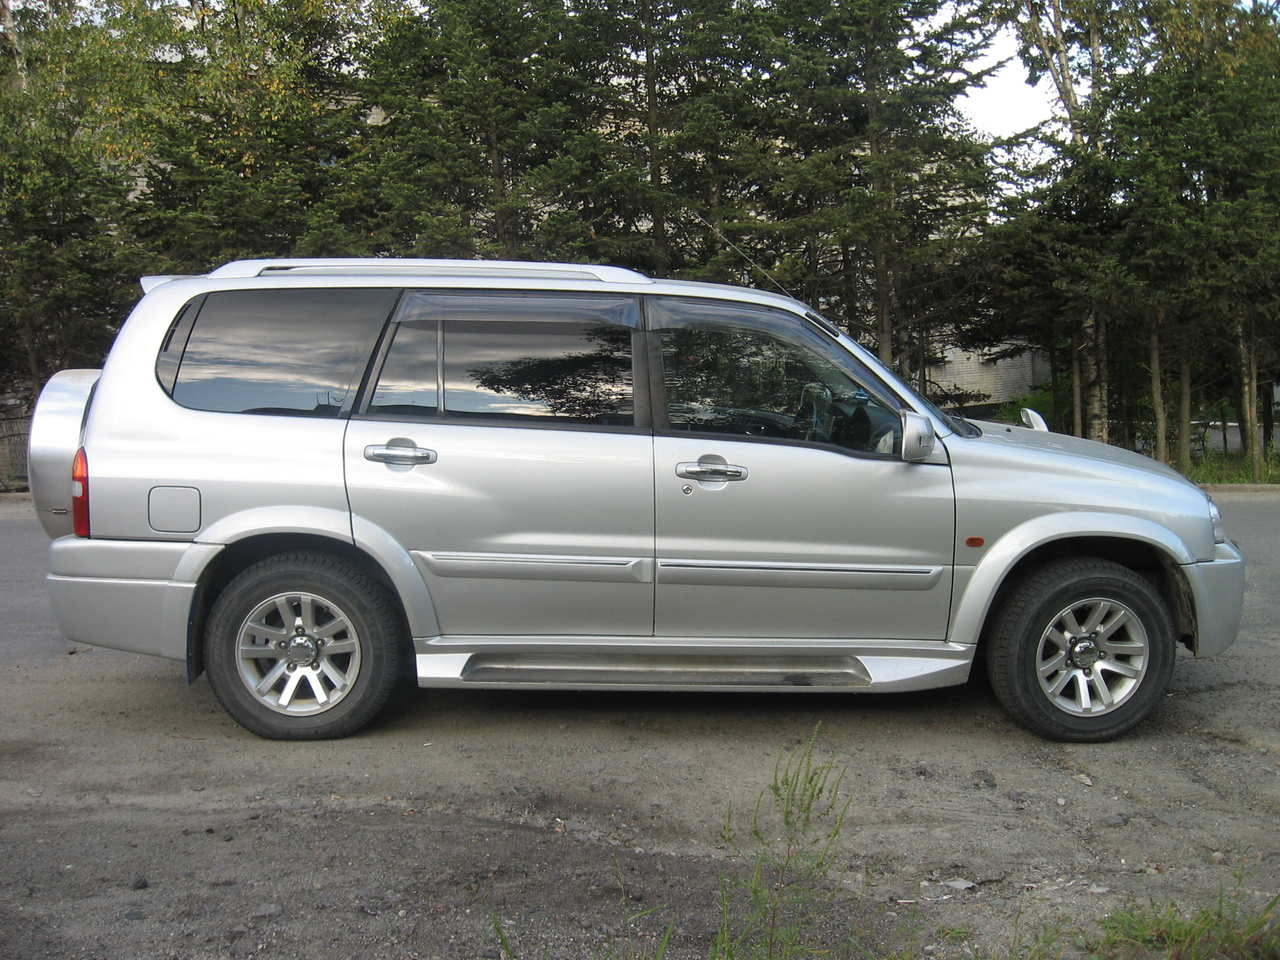 Suzuki Grand Escudo Xl